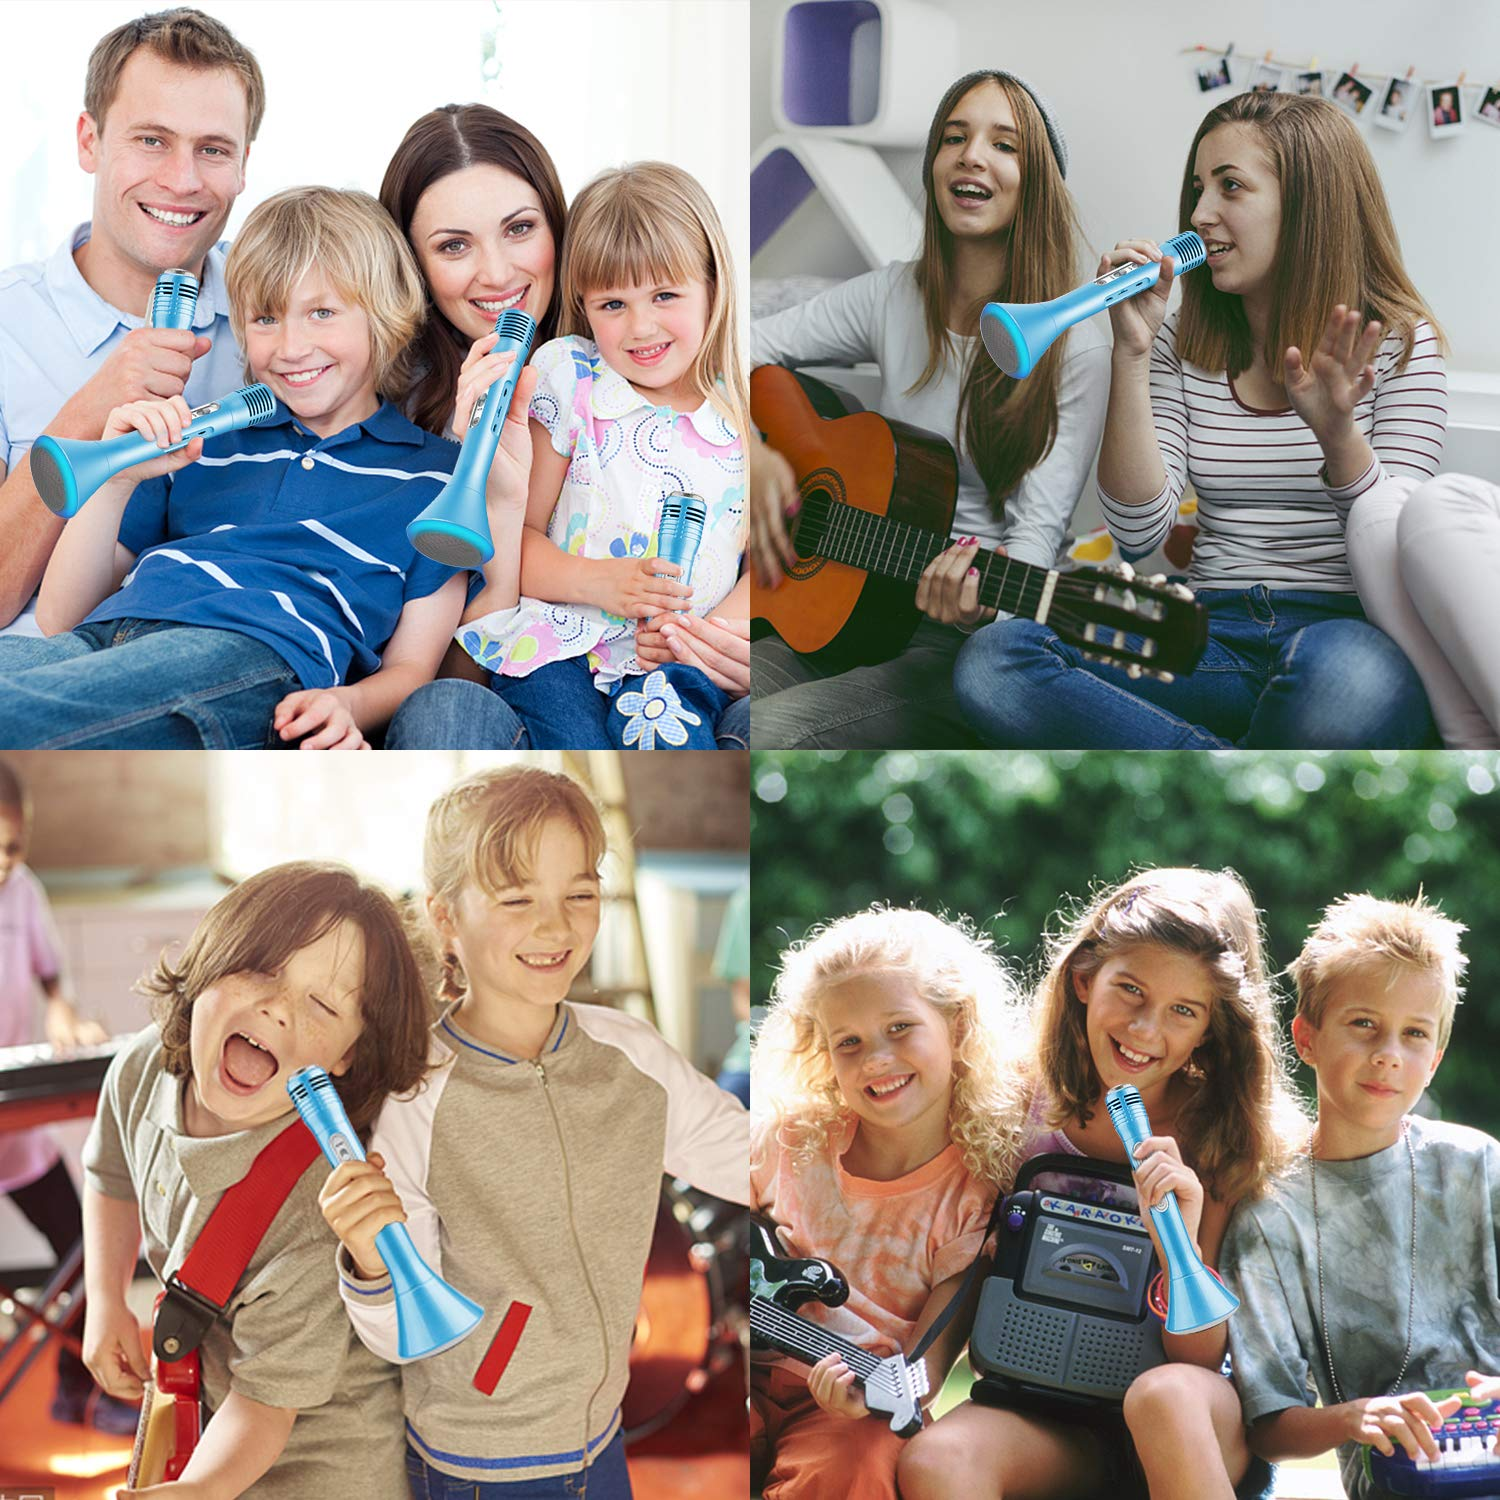 Kids Karaoke Machine Wireless Singing Microphone with Bluetooth Speaker Colorful LED Lights Handheld Portable Music Playing Toys  for Girls Boys Home Party KTV Xmas Birthday Gifts Andriod iOS PC iPad by Santery (Image #4)